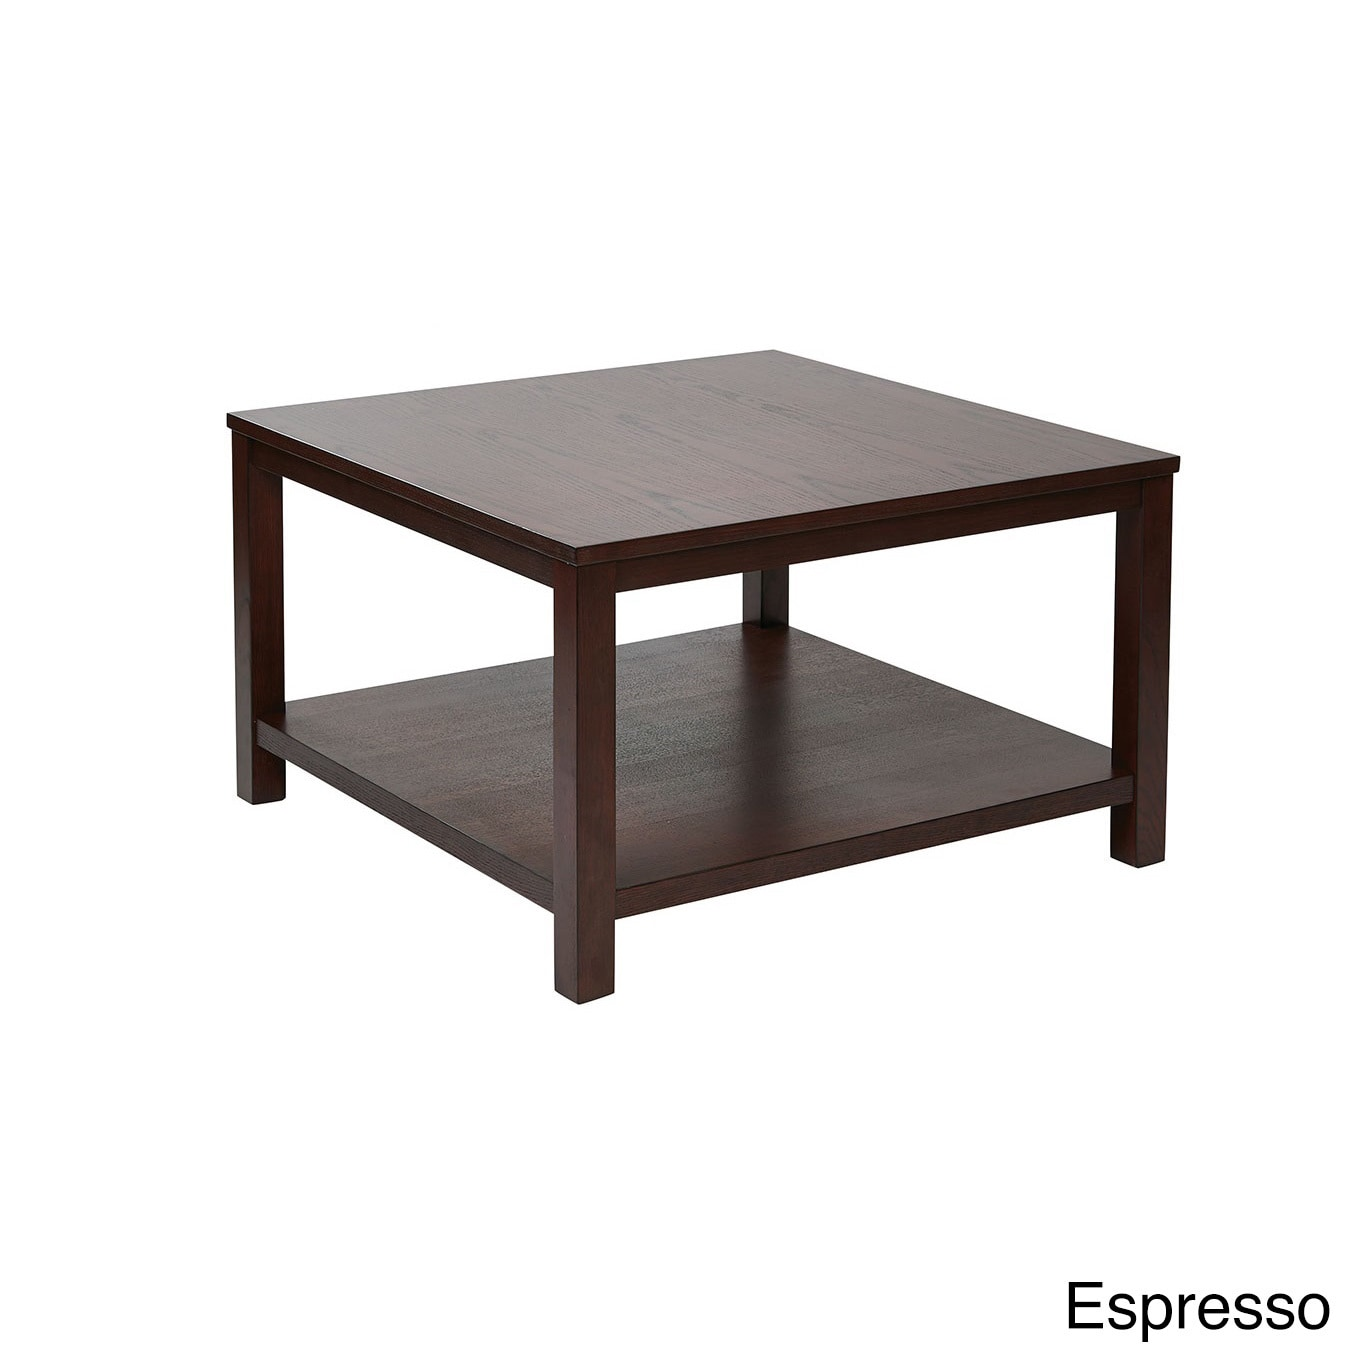 Square Coffee Table W/ Dual Shelves Solid Wood Legs & Wood